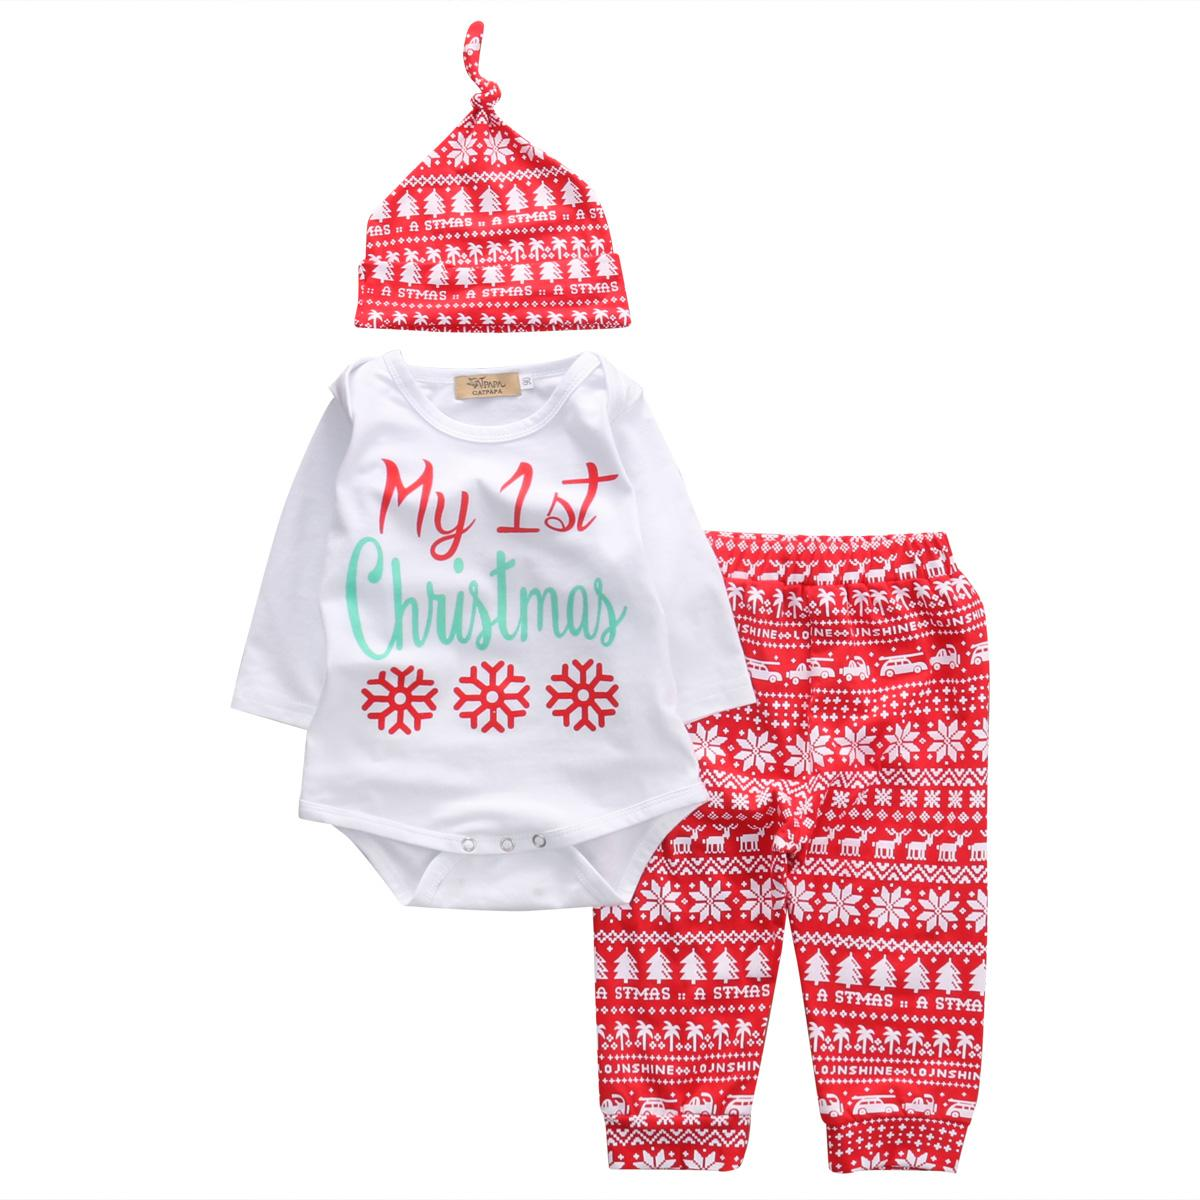 7dbacc5bf285 2019 Pudcoco Newborn Baby Boys Girls Christmas Clothes Tops Romper ...